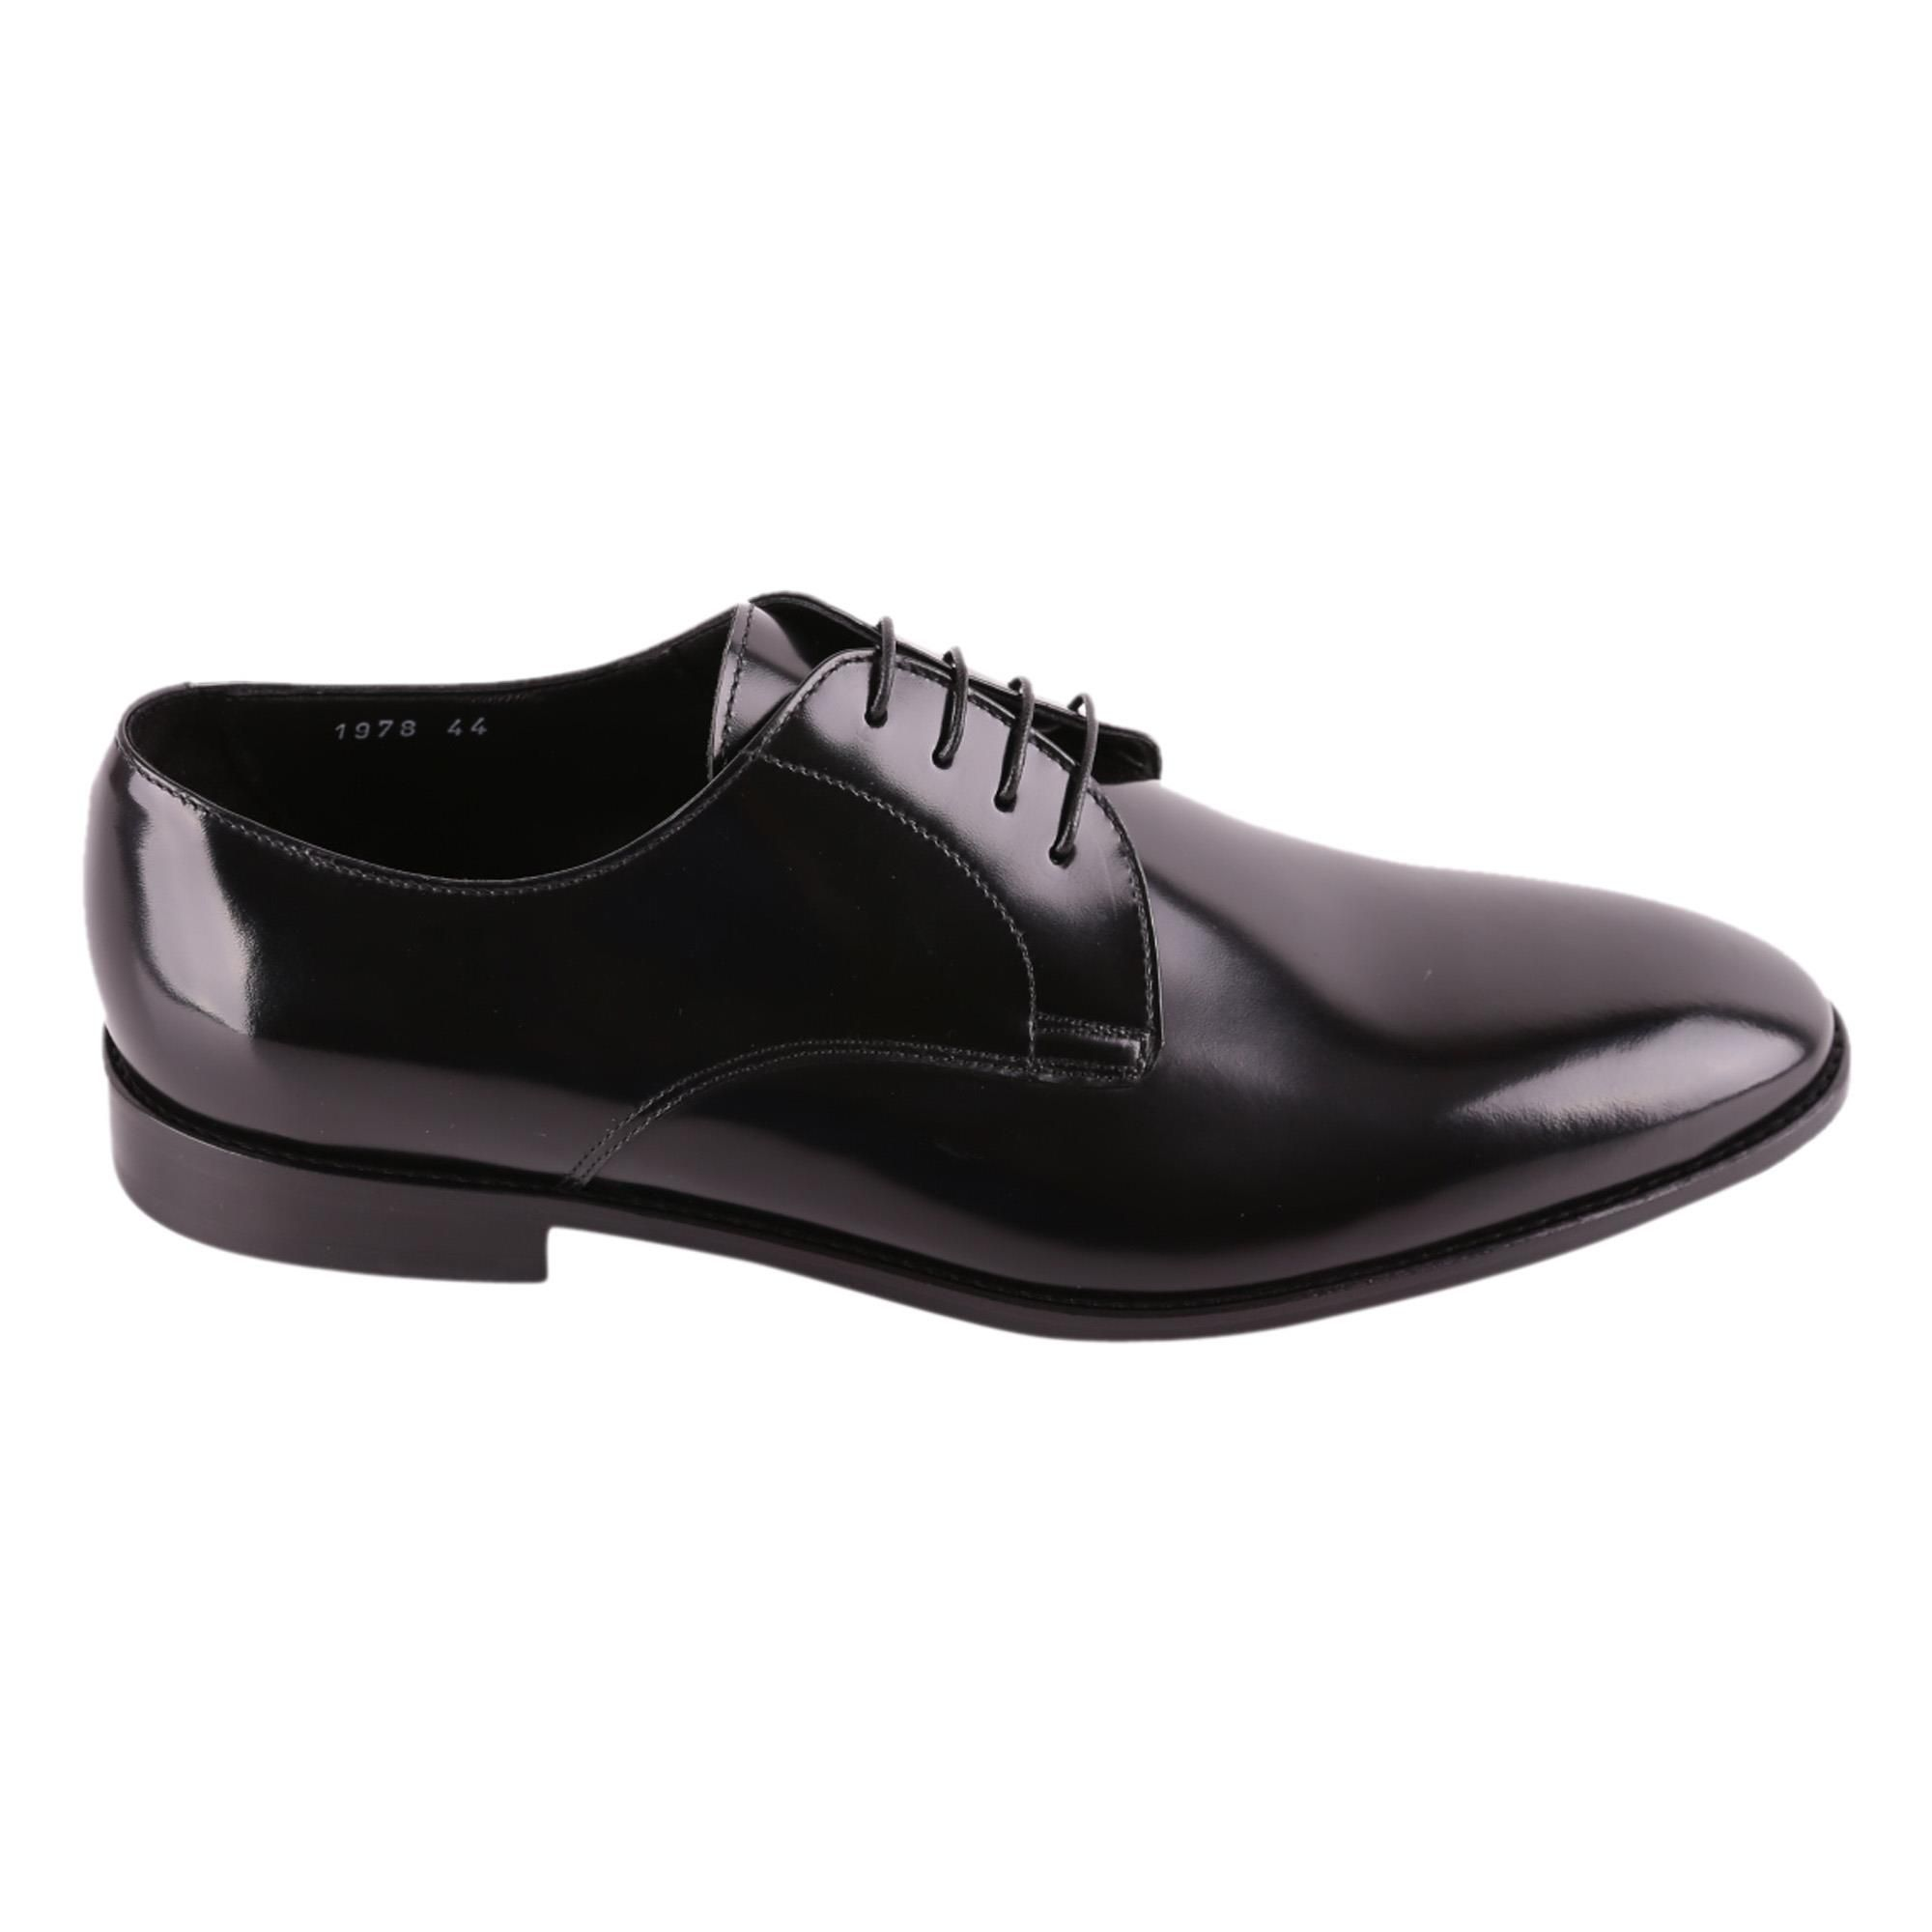 DOUCAL'S MEN'S DU1978FORDUF028NN00 BLACK LEATHER LACE-UP SHOES